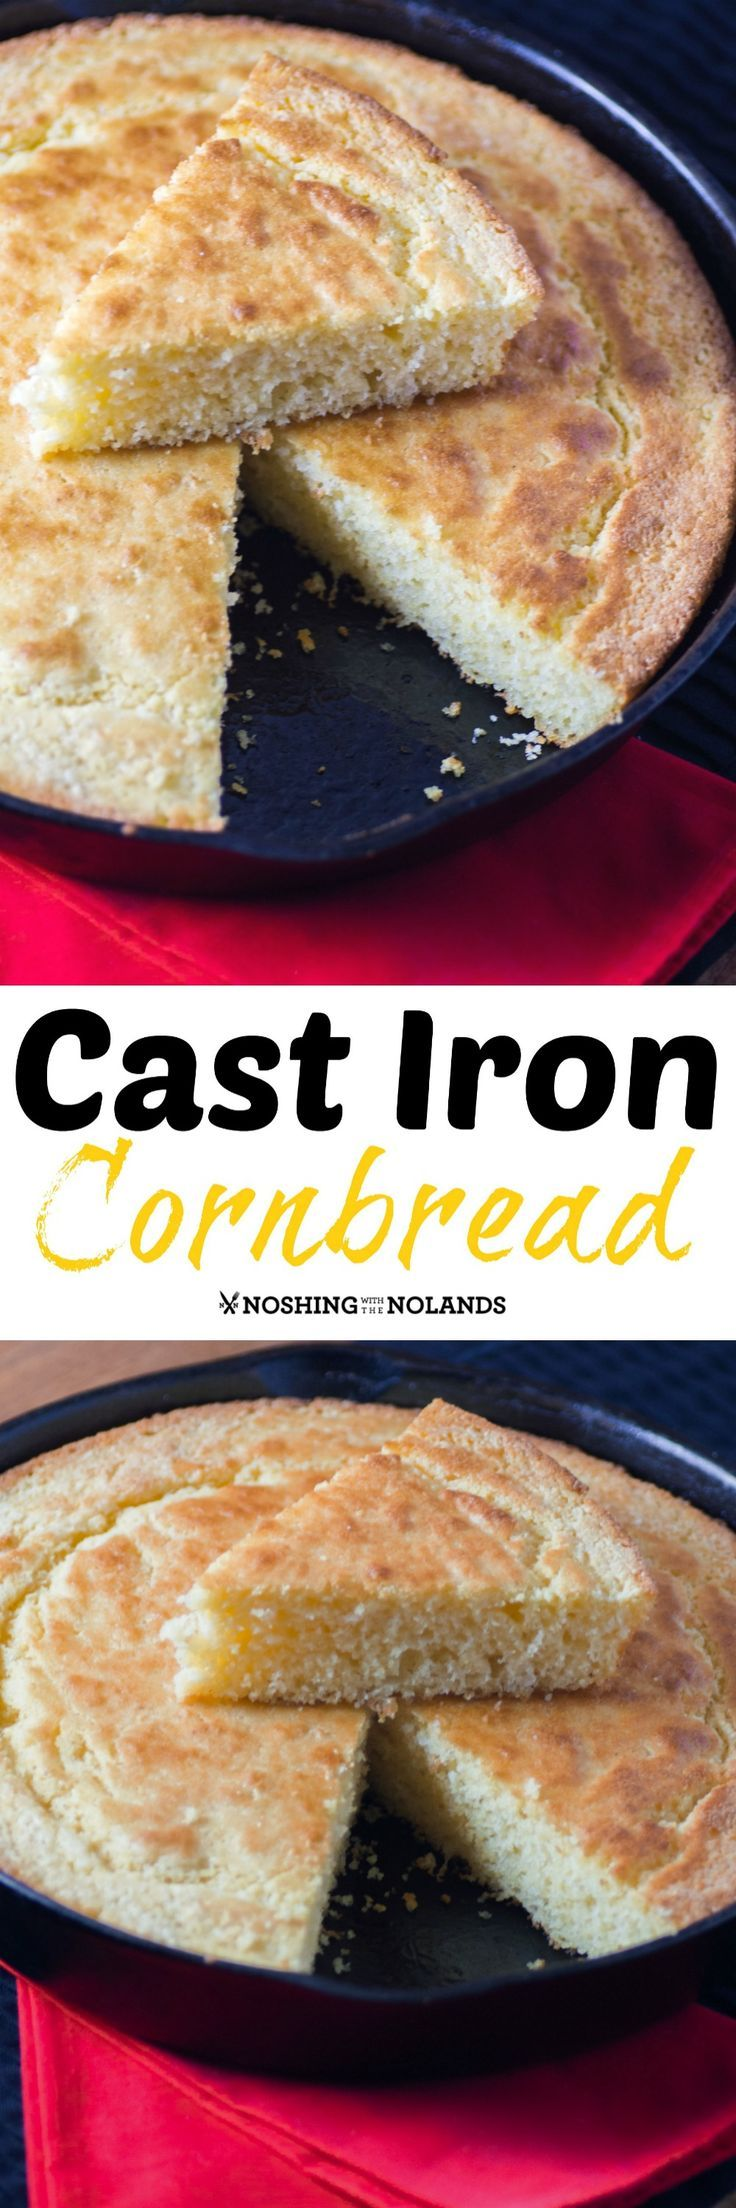 Best Cast Iron Southern Cornbread Do you love cornbread? Do you find that is can be too dry or too crumbly that you have trouble when you try to put a little butter on it. This won't happen with this gorgeous Best Cast Iron Southern Cornbread! This cornbread is moist and holds together beautifully and...Read More »